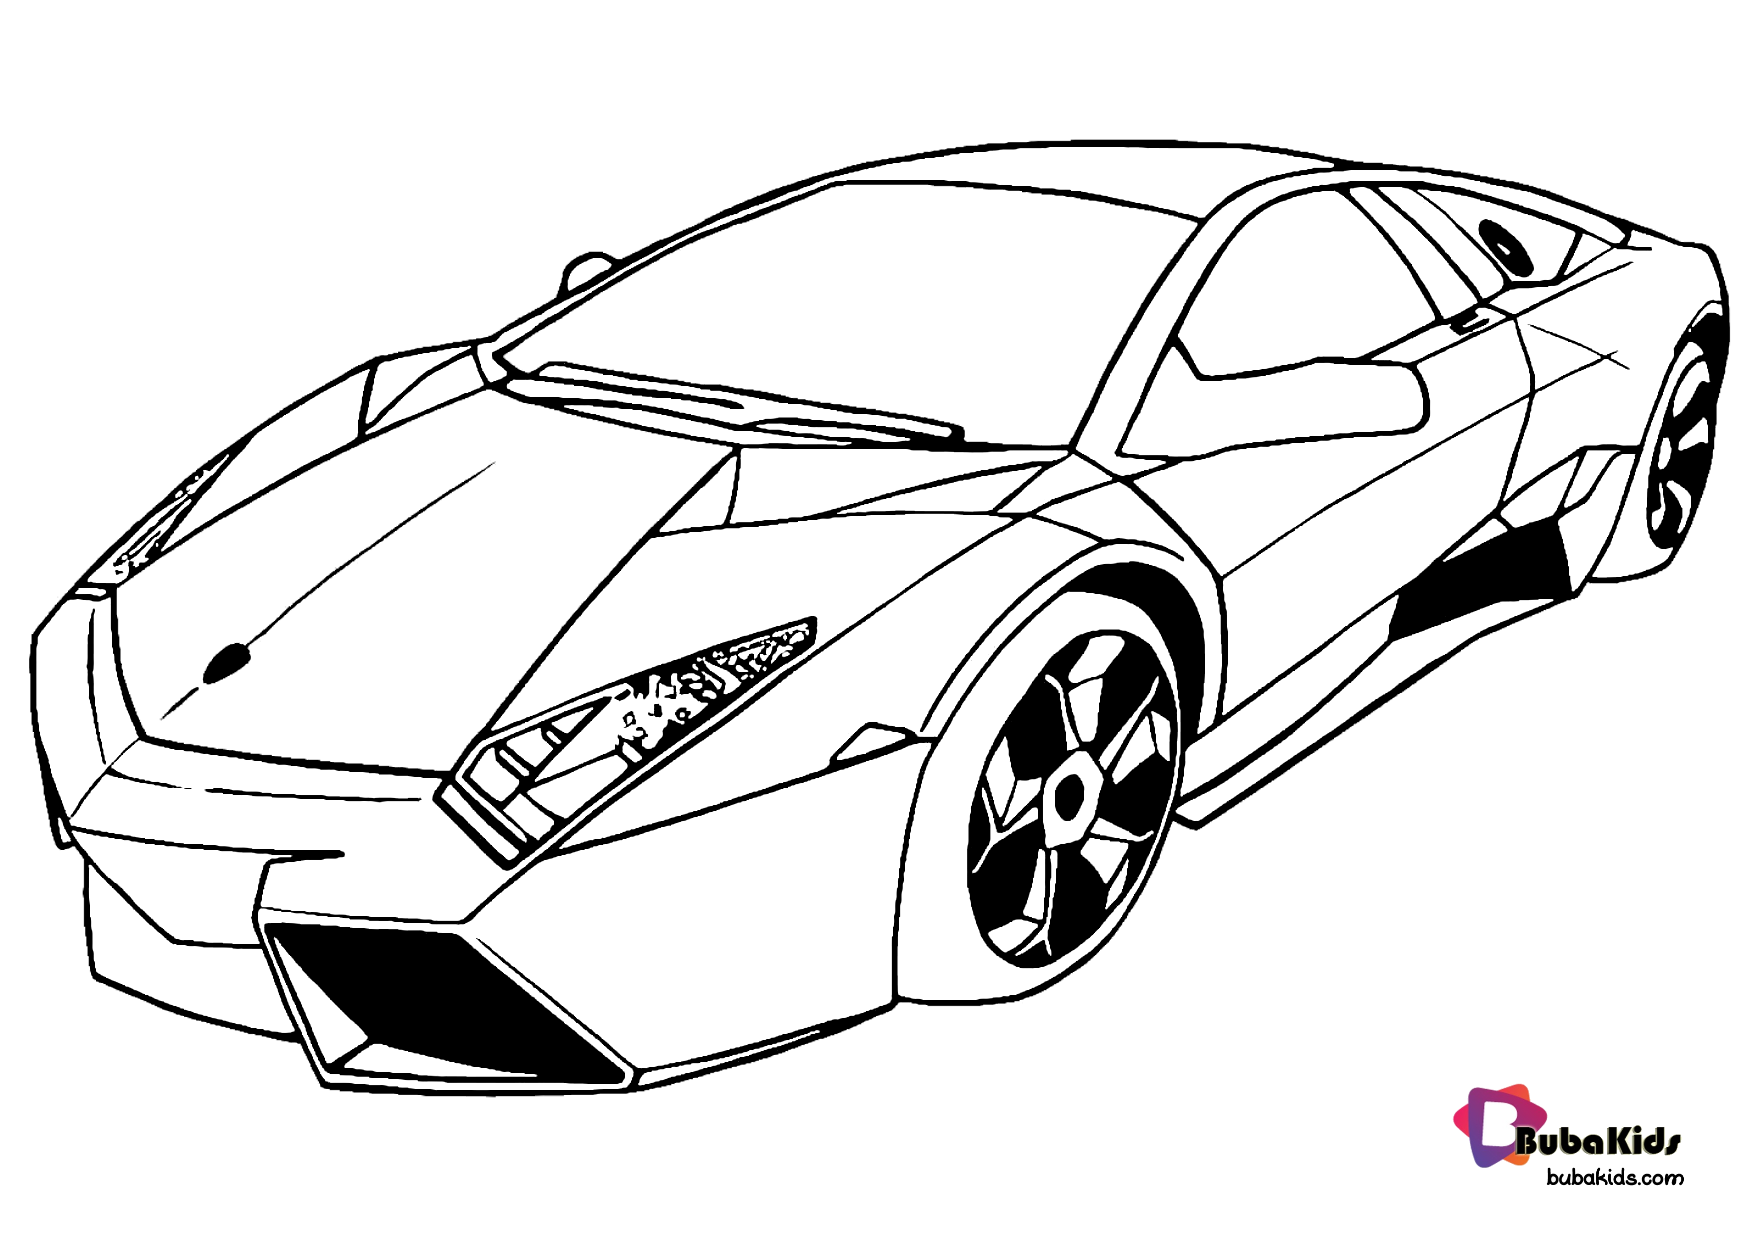 Free Download And Printable Super Car Coloring Page Collection Of Cartoon Coloring Pages For In 2020 Cars Coloring Pages Race Car Coloring Pages Sports Coloring Pages